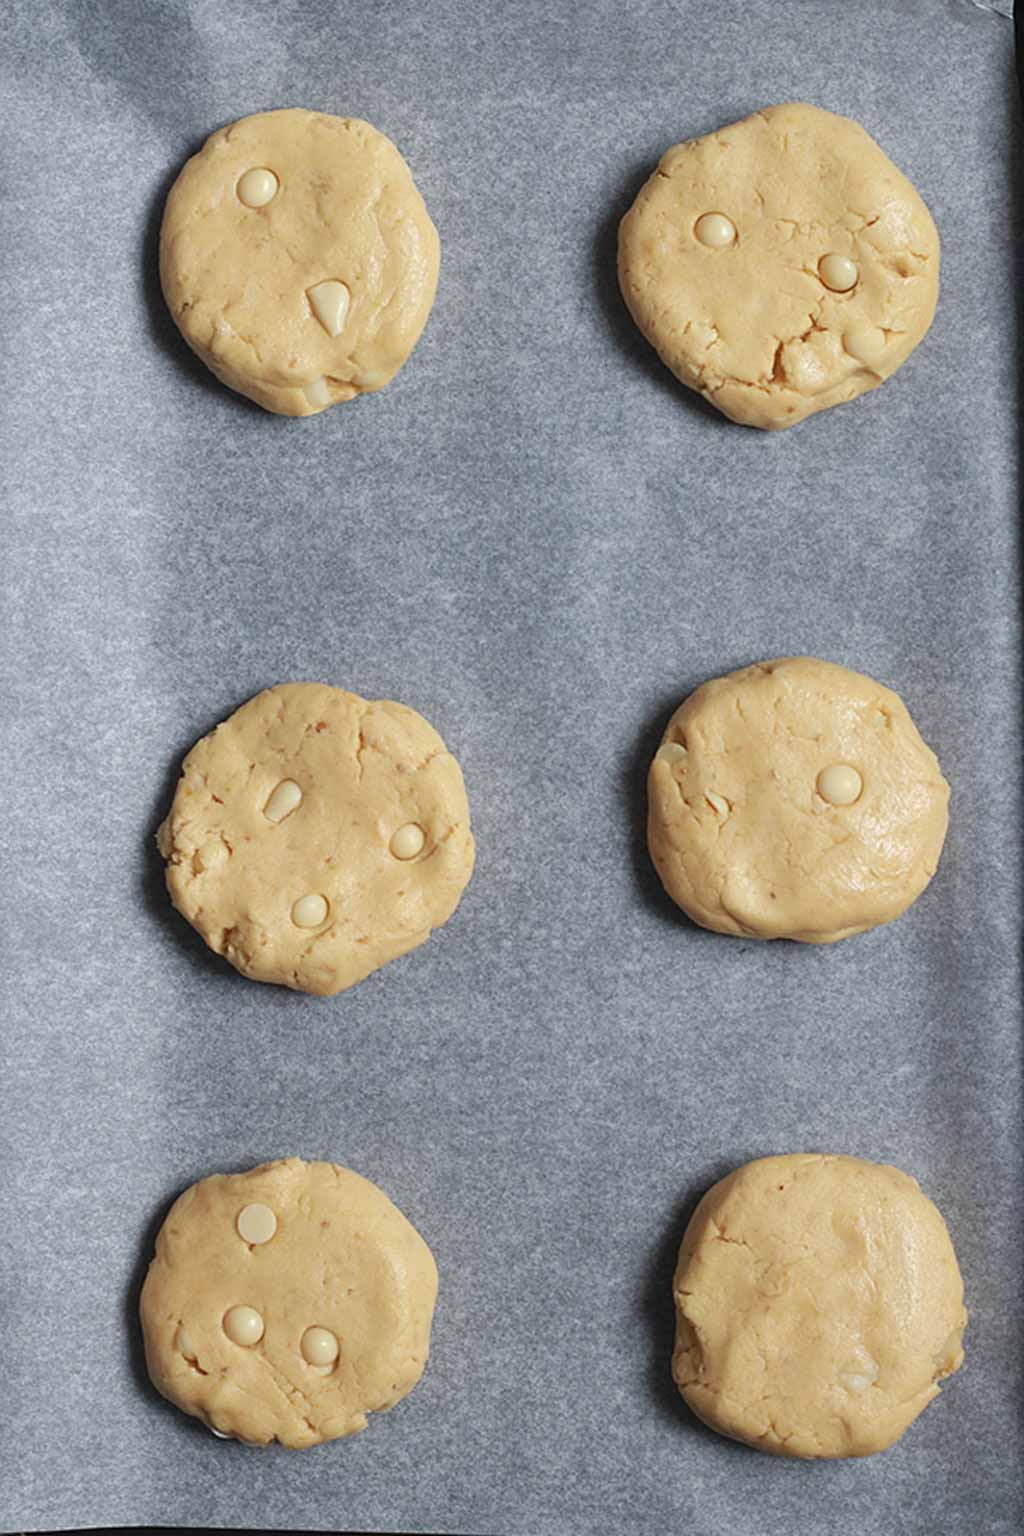 Discs Of Cookie Dough On A Baking Tray